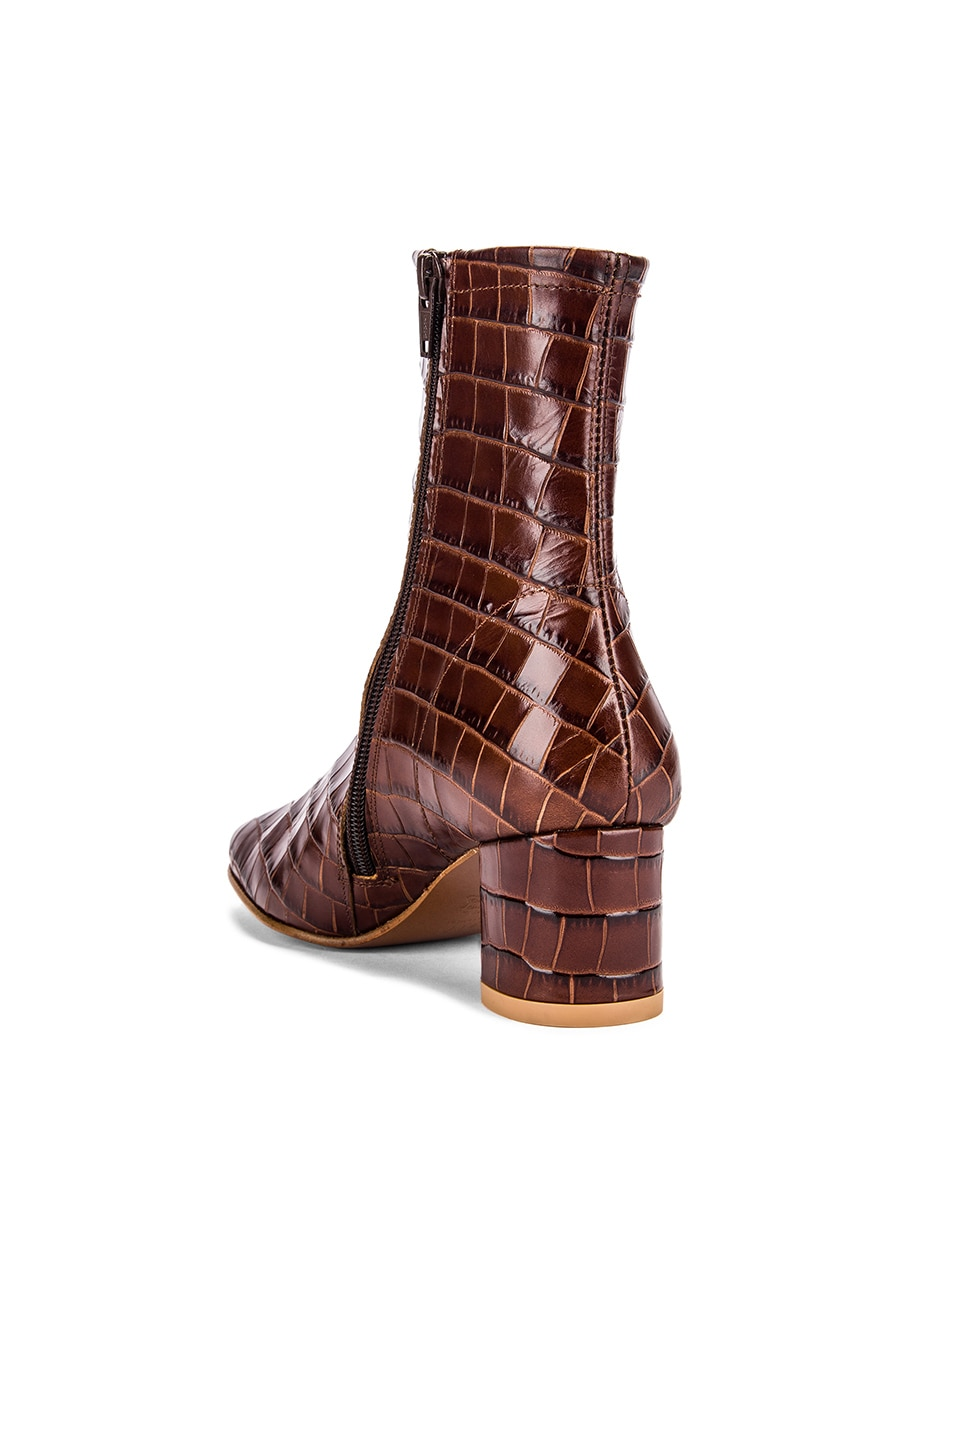 Image 3 of By Far Sofia Croco Embossed Leather Boot in Nutella